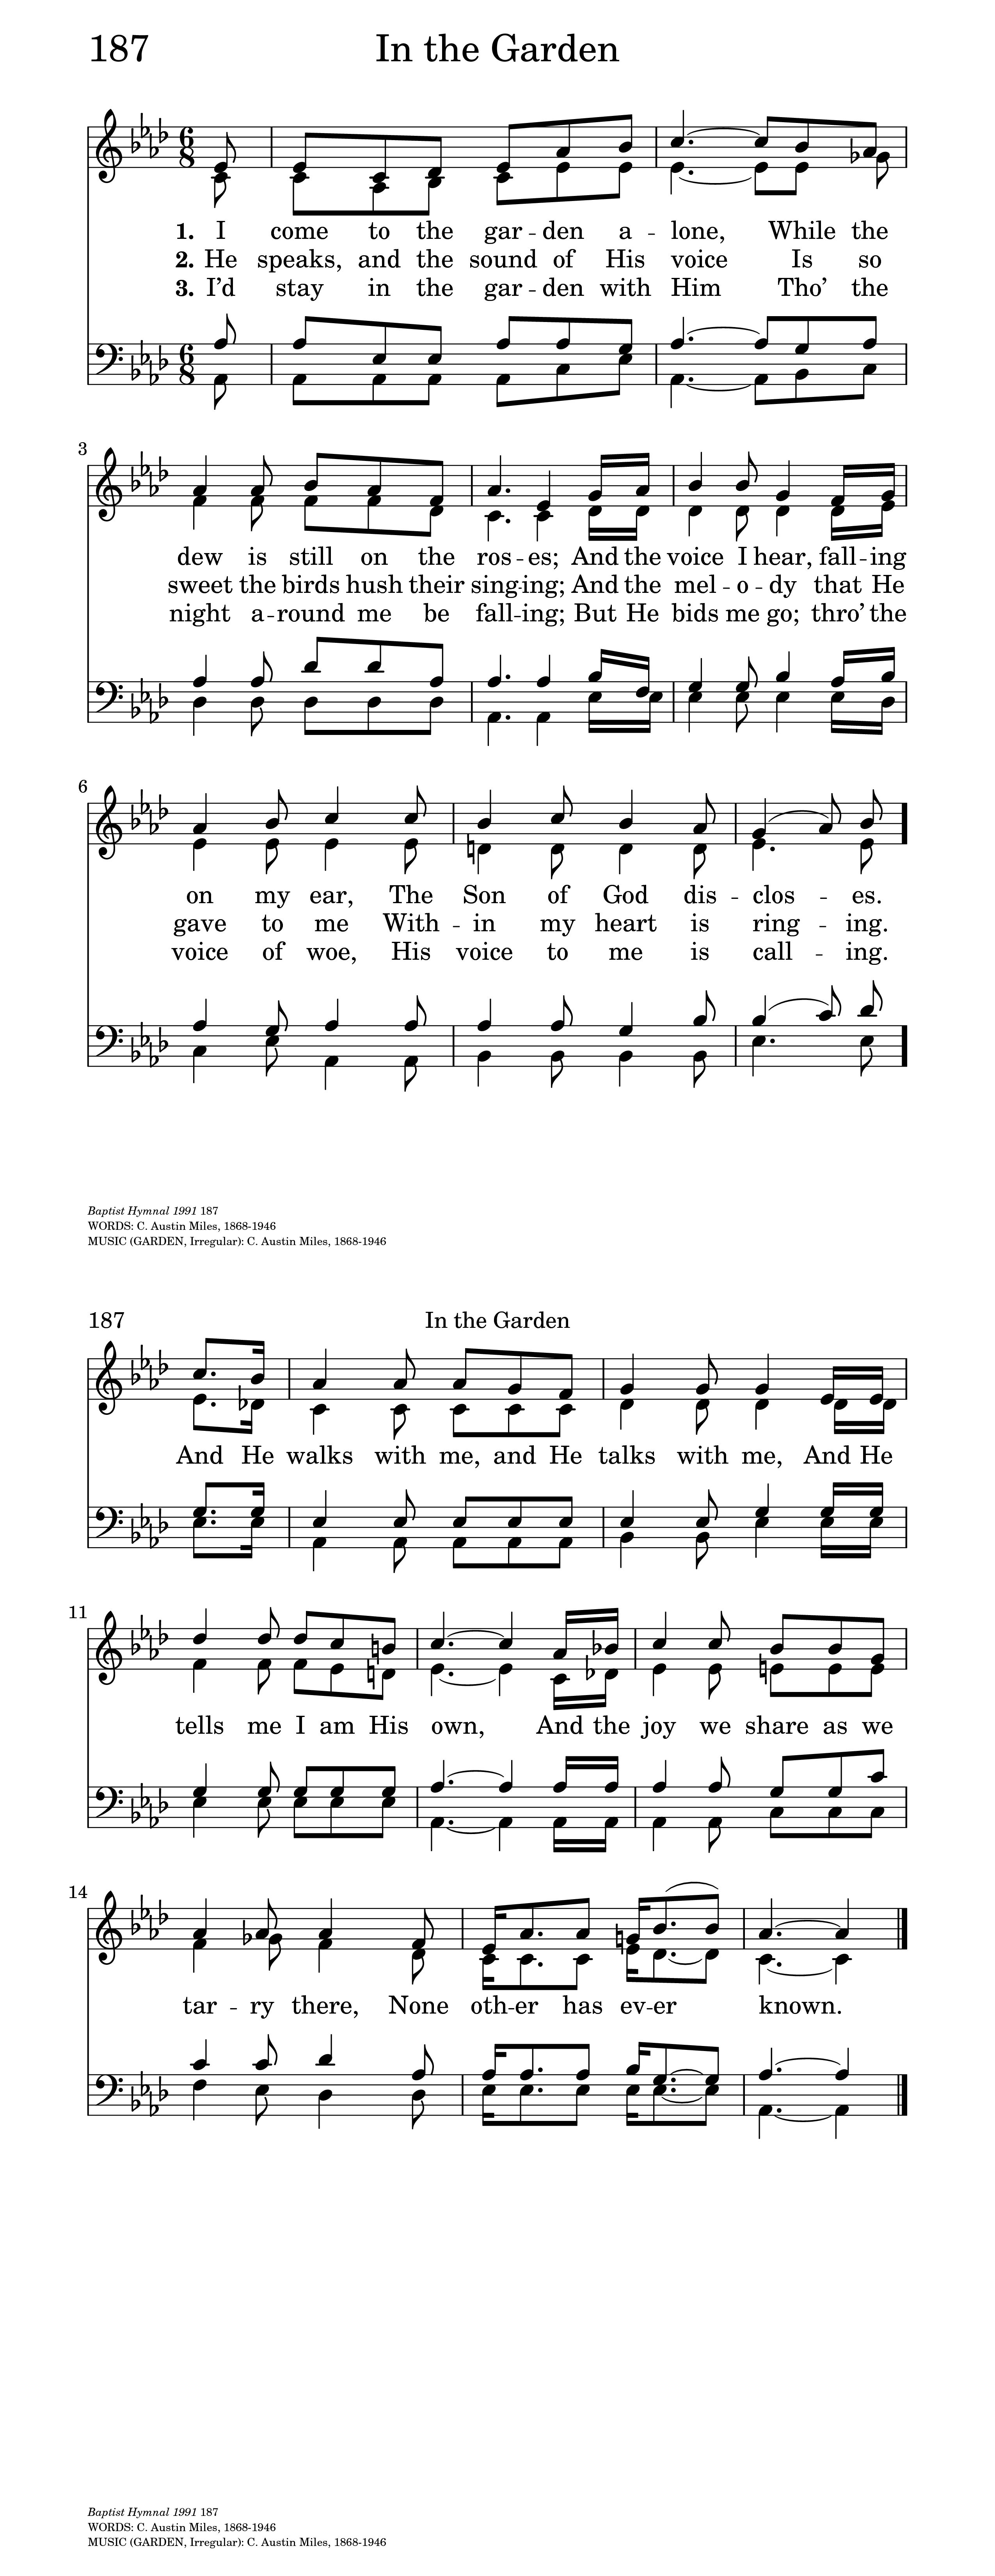 picture about Free Printable Black Gospel Sheet Music named Within just the backyard garden